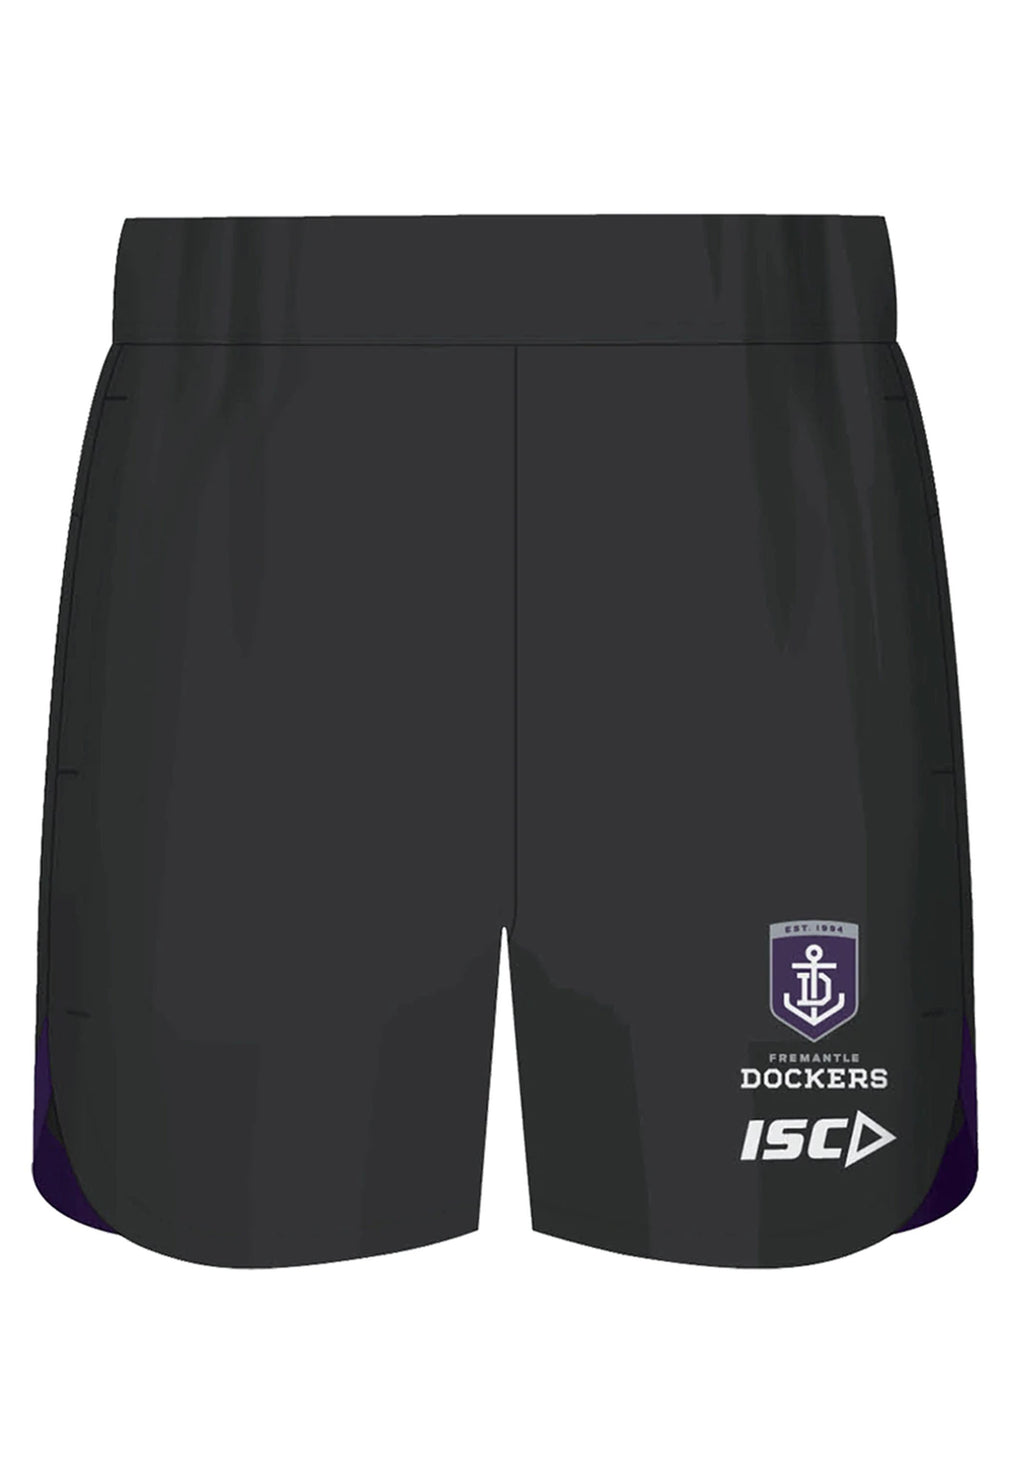 ISC FREMANTLE DOCKERS 2020 MENS TRAINING SHORTS <BR> FD20SHO01M